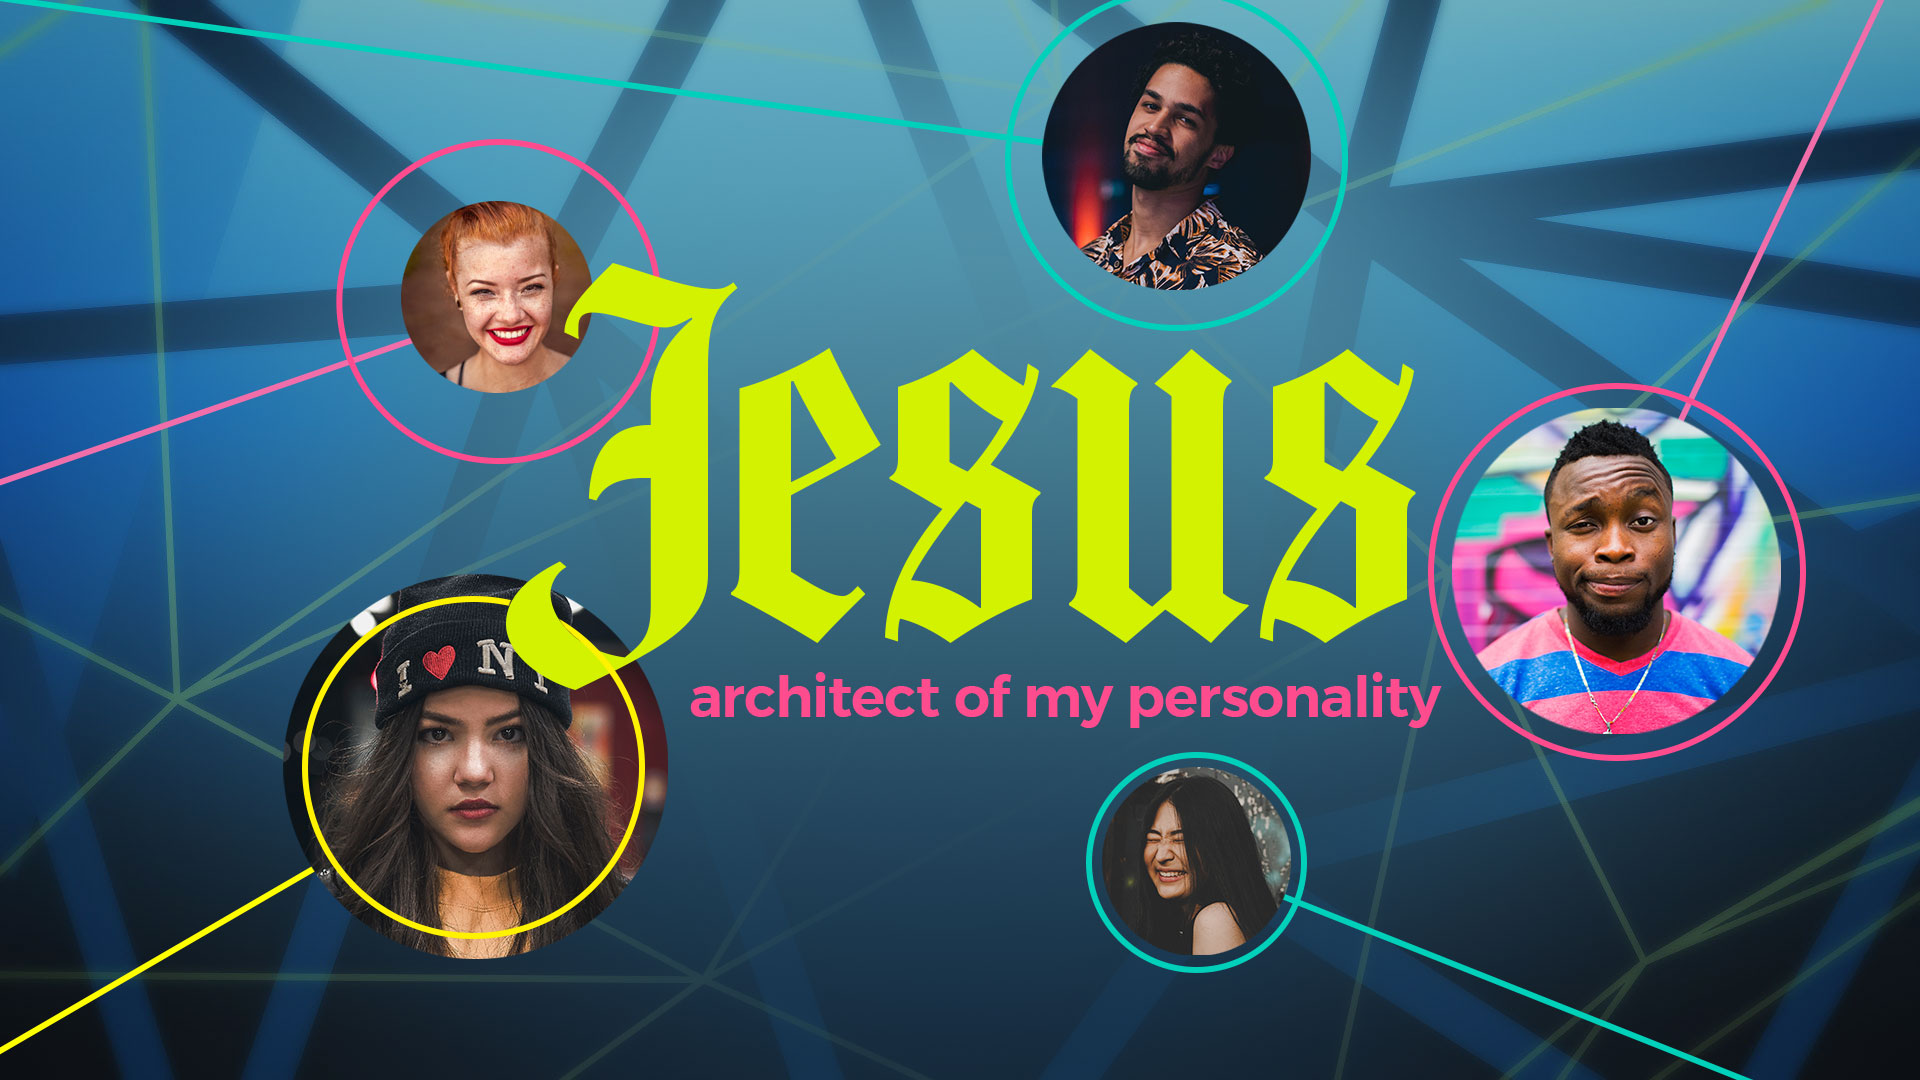 Jesus: Architect of My Personality